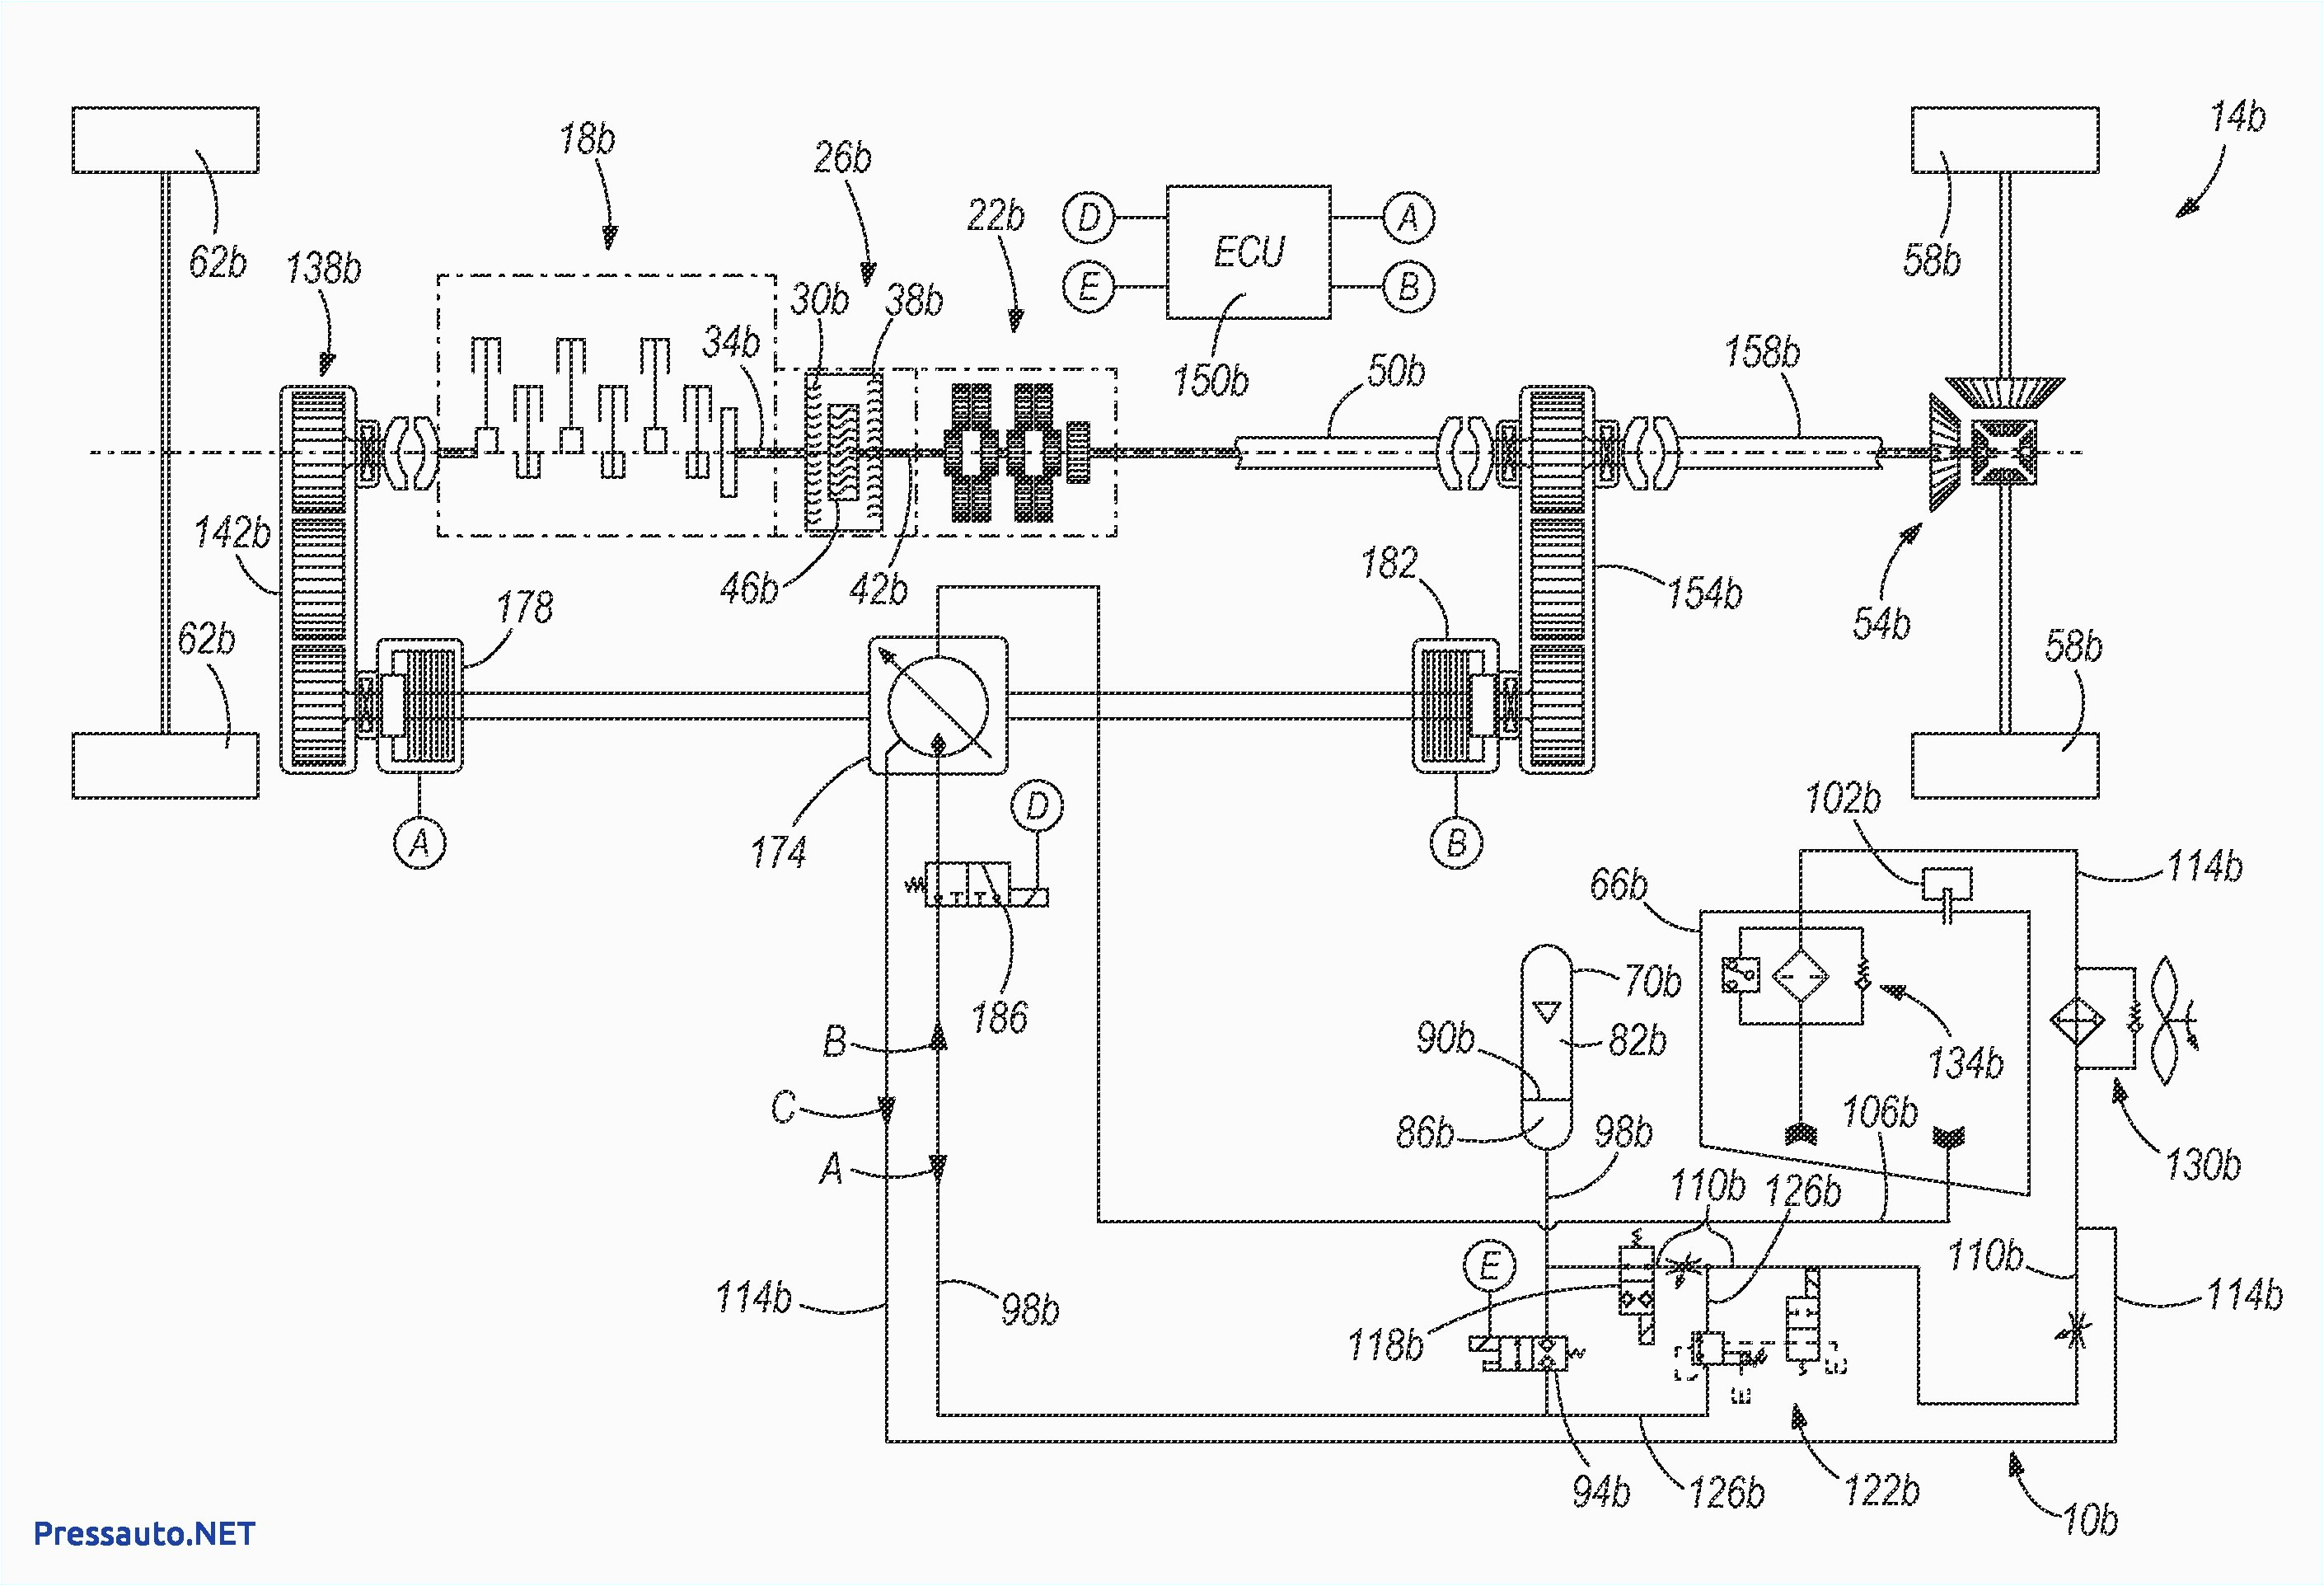 ford 1210 wiring wiring diagram ford 1210 tractor wiring diagram wiring diagram article mix ford 1210